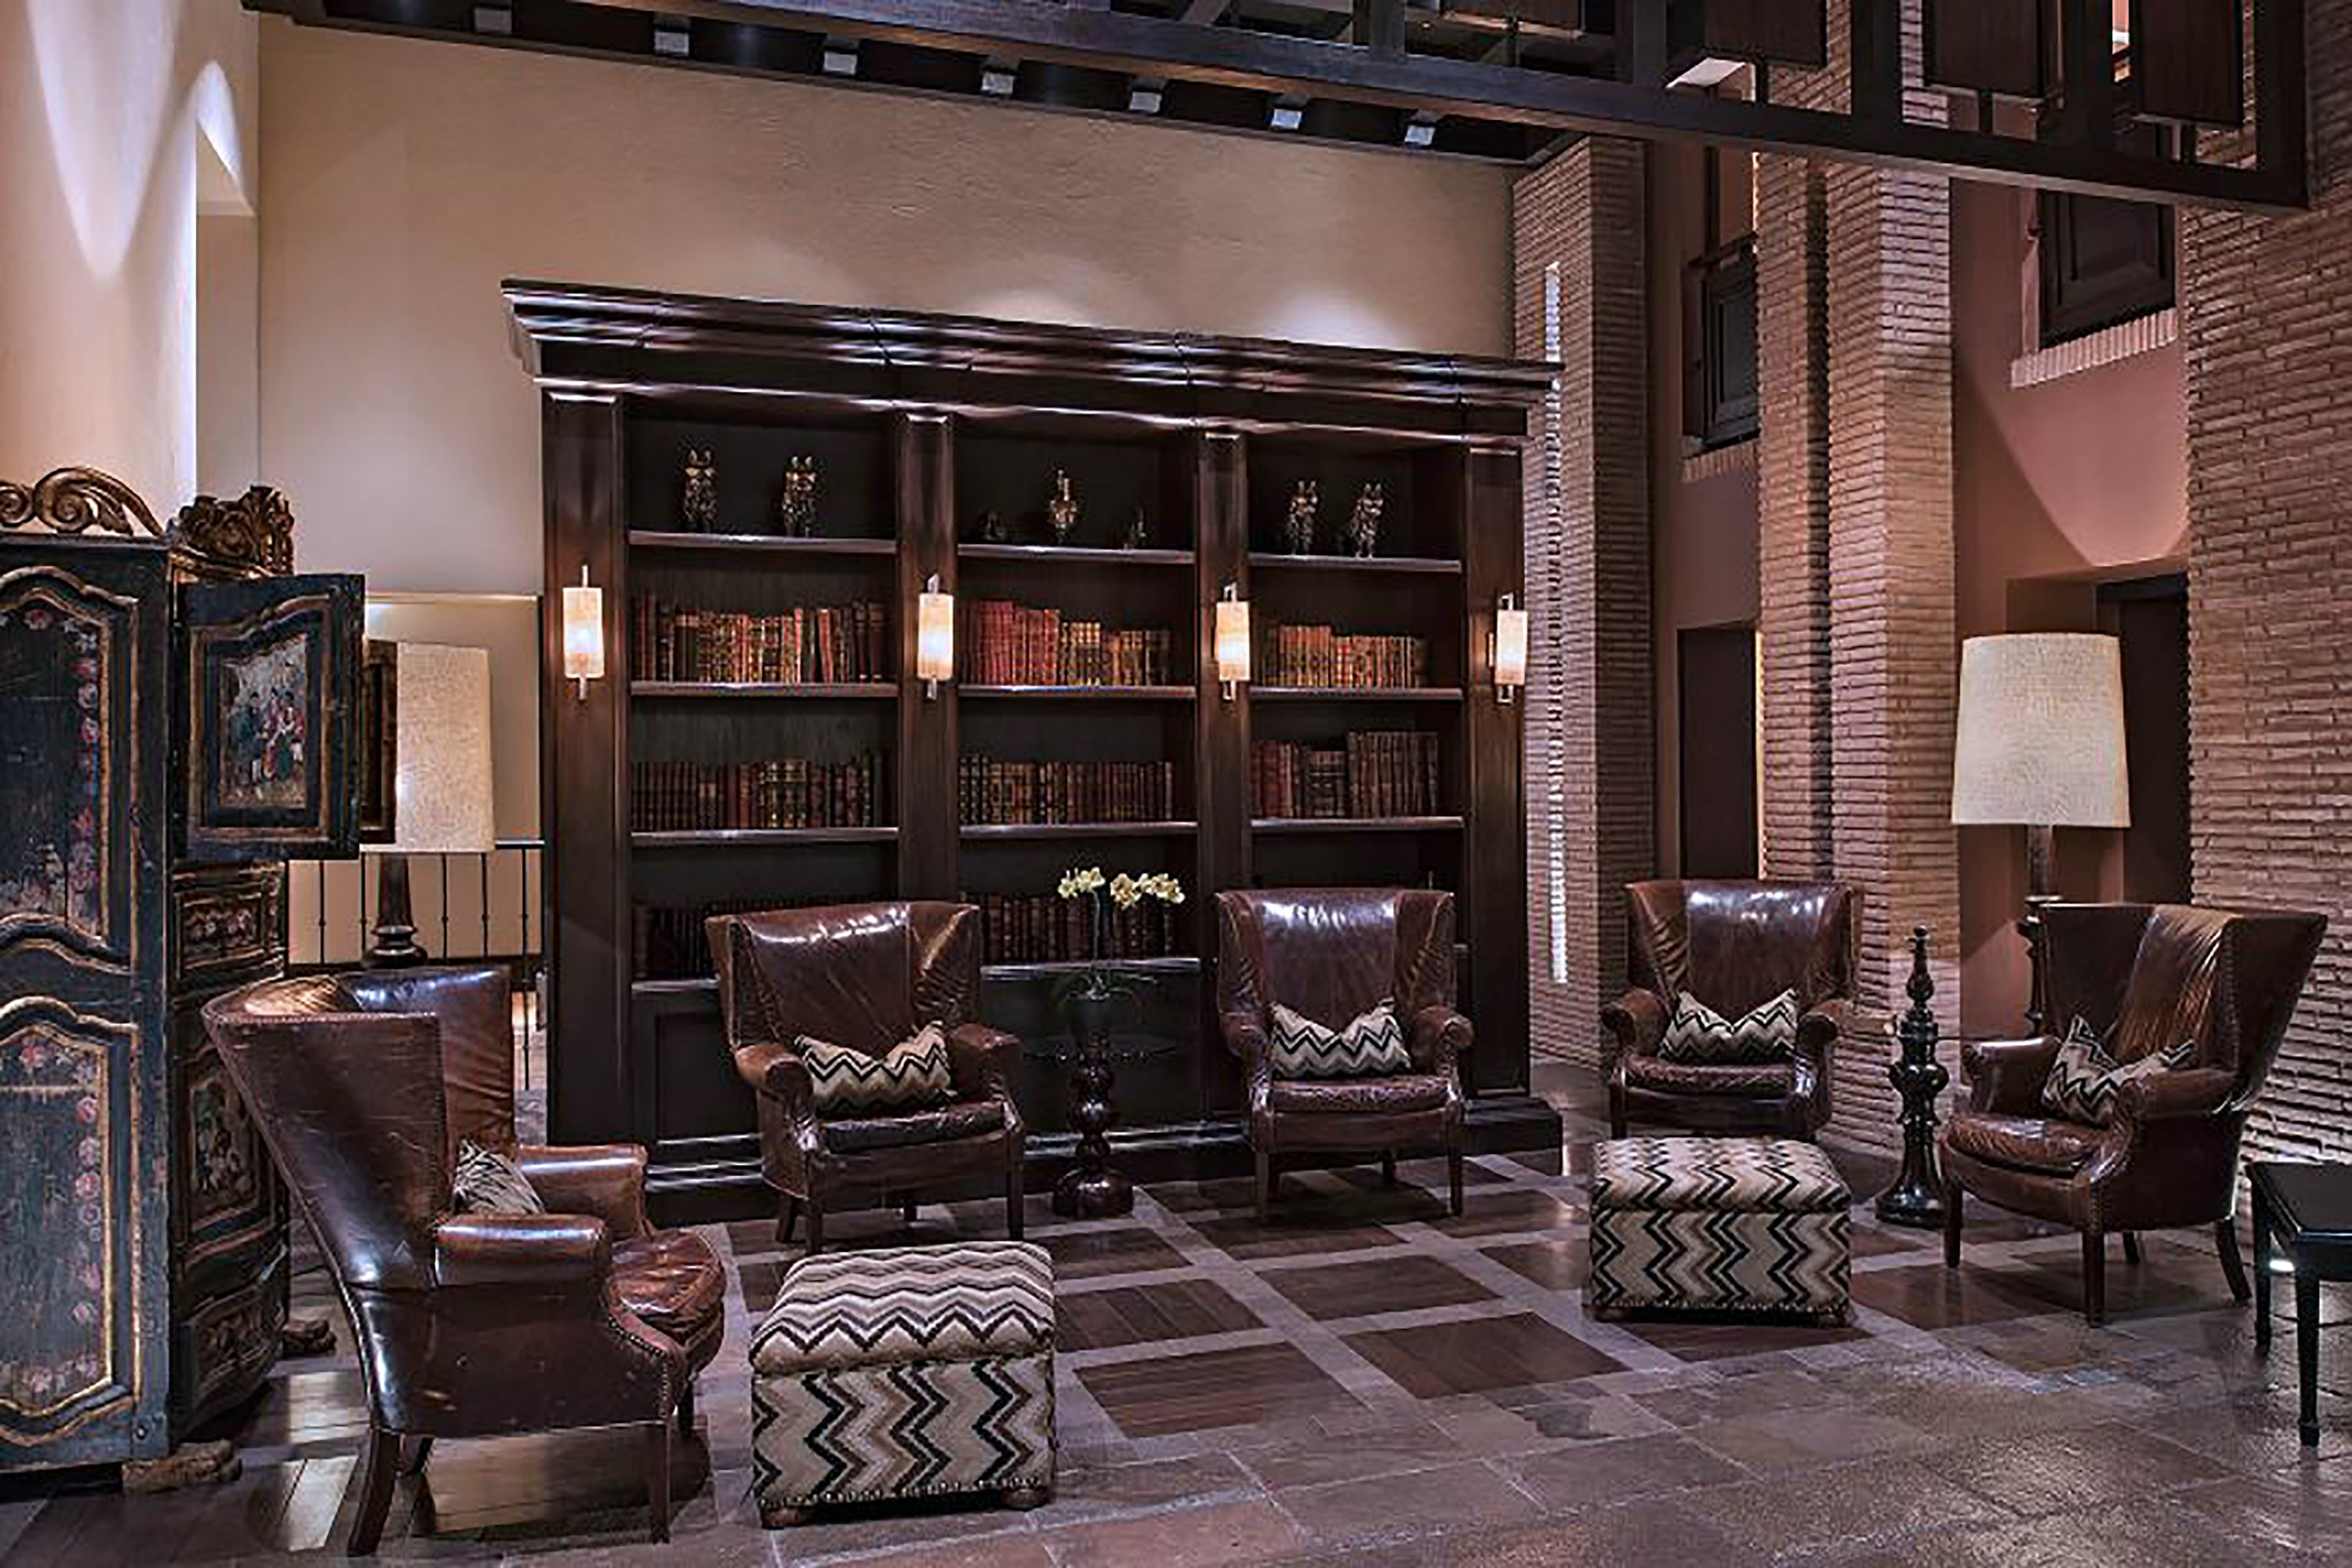 The JW Marriott El Convento Cusco's library is brimming with antiques.